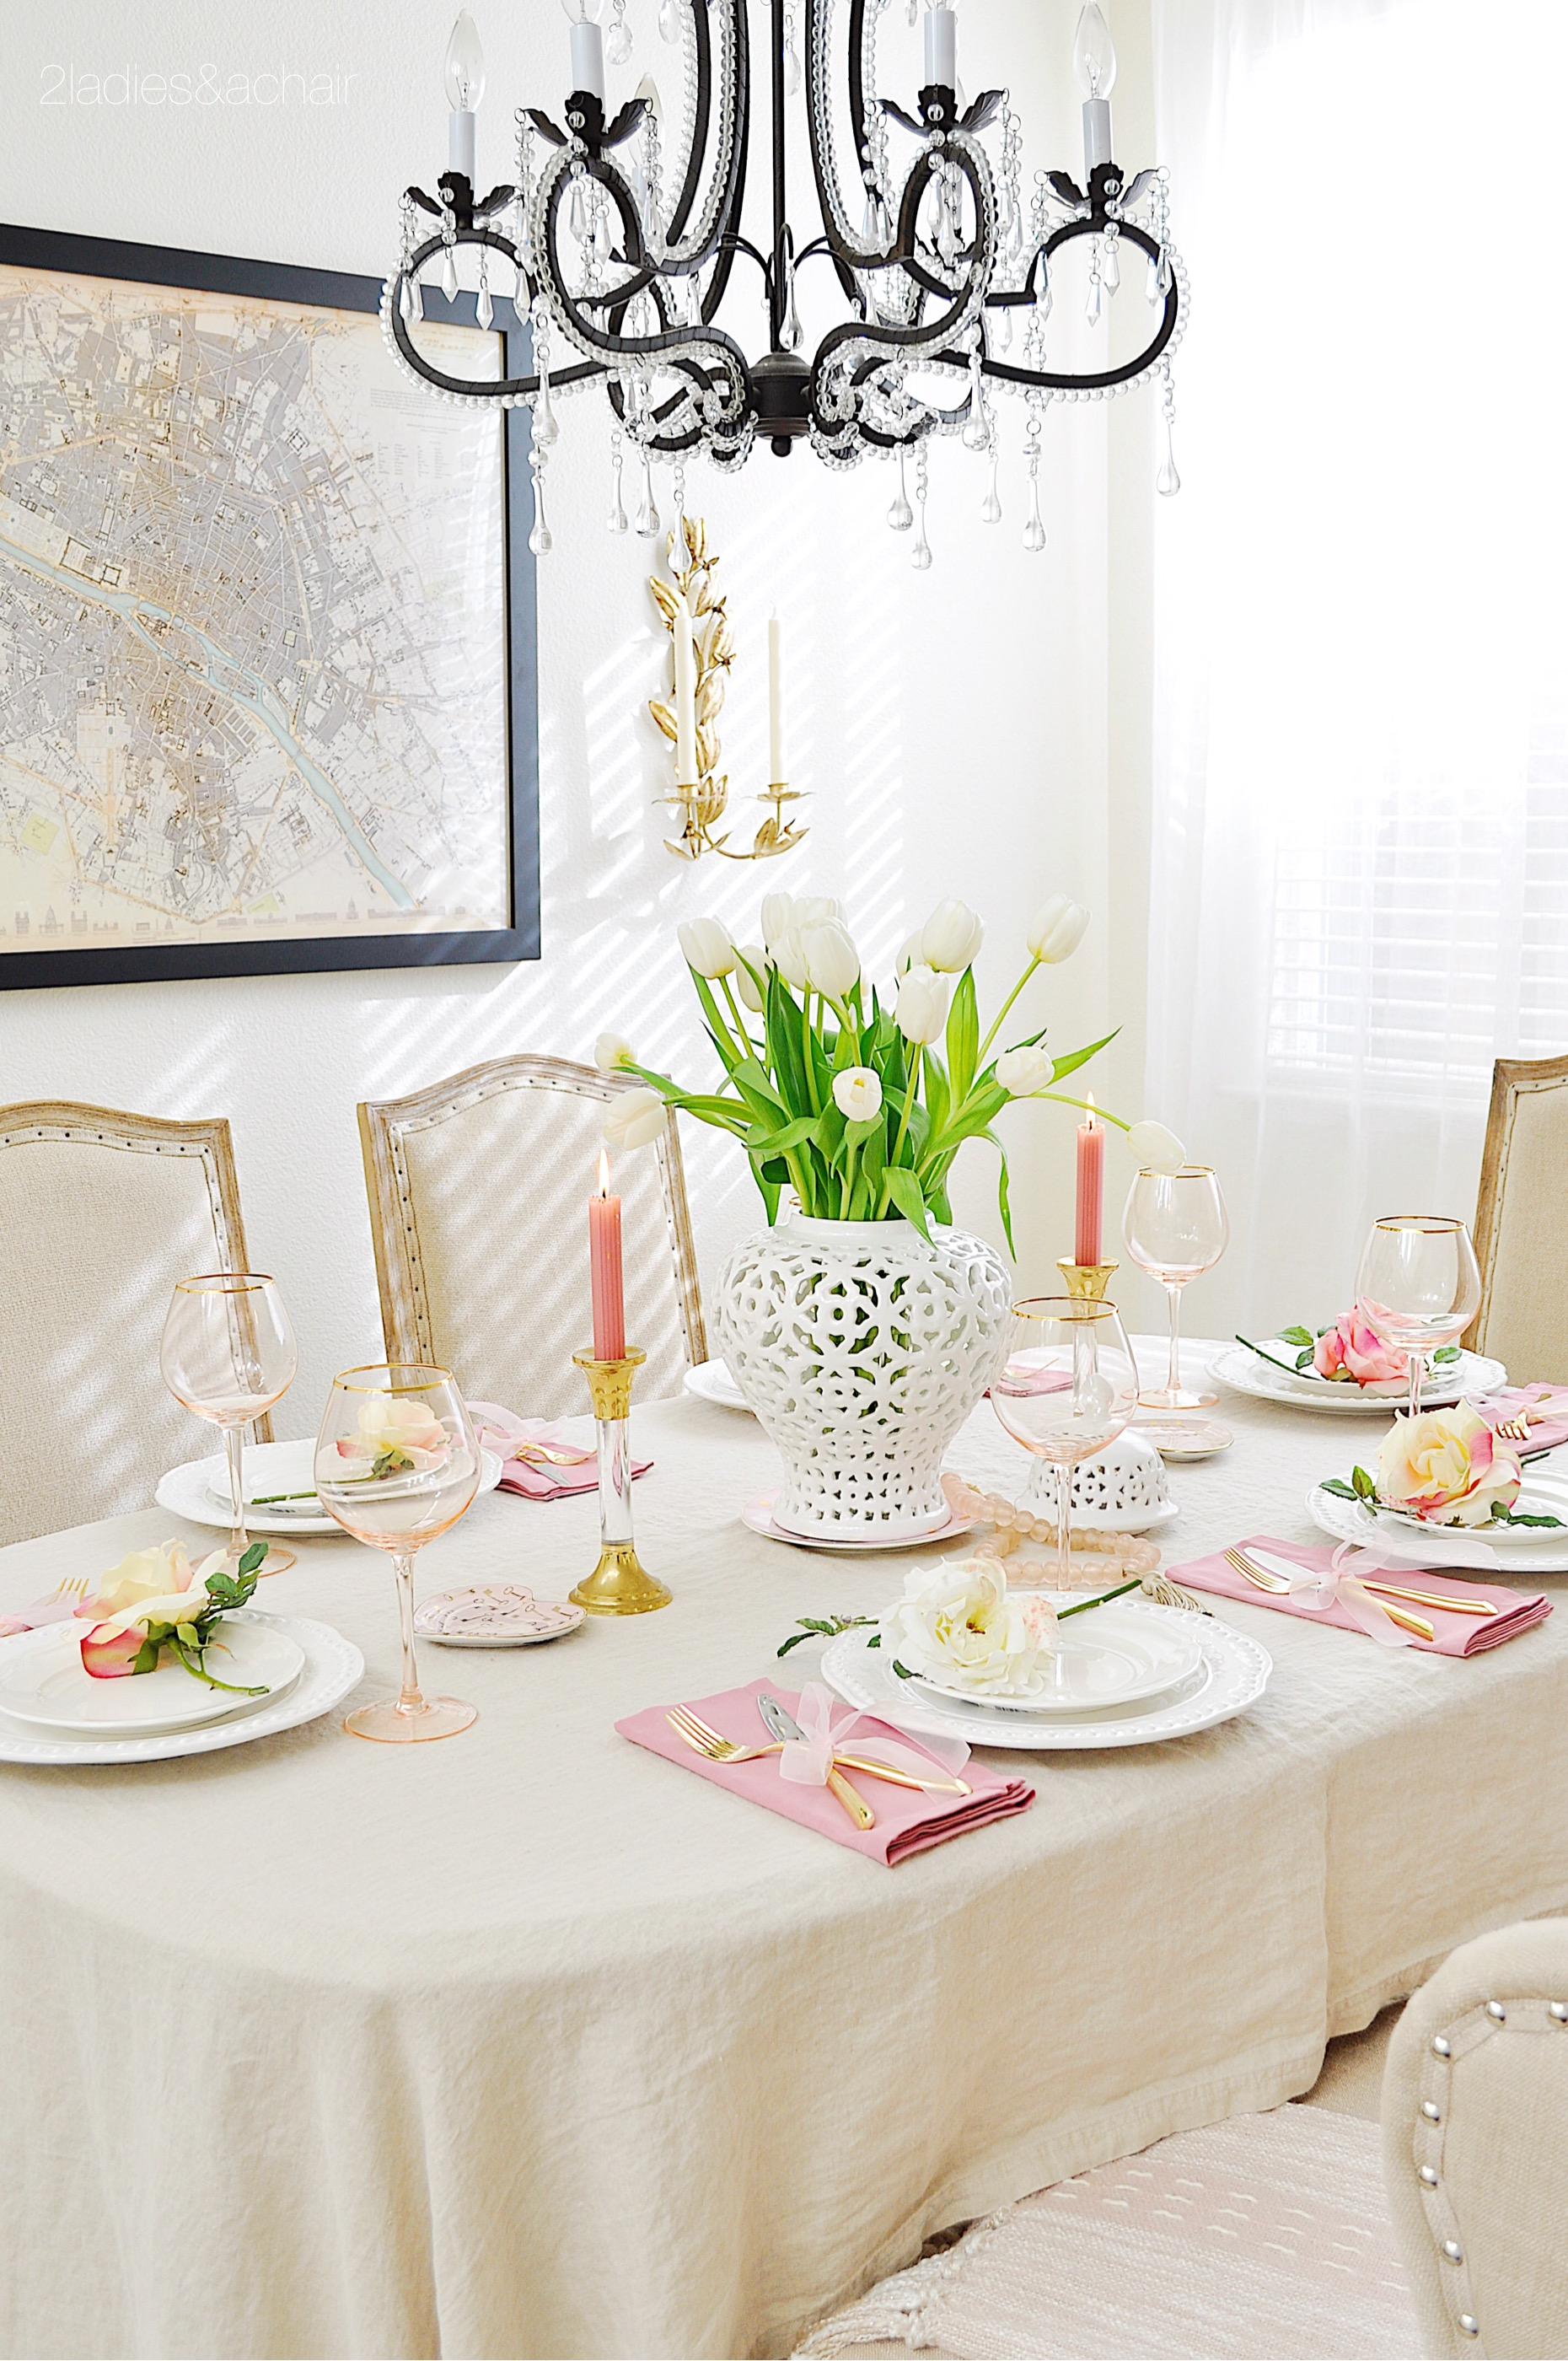 decorate with pink IMG_8955.JPG